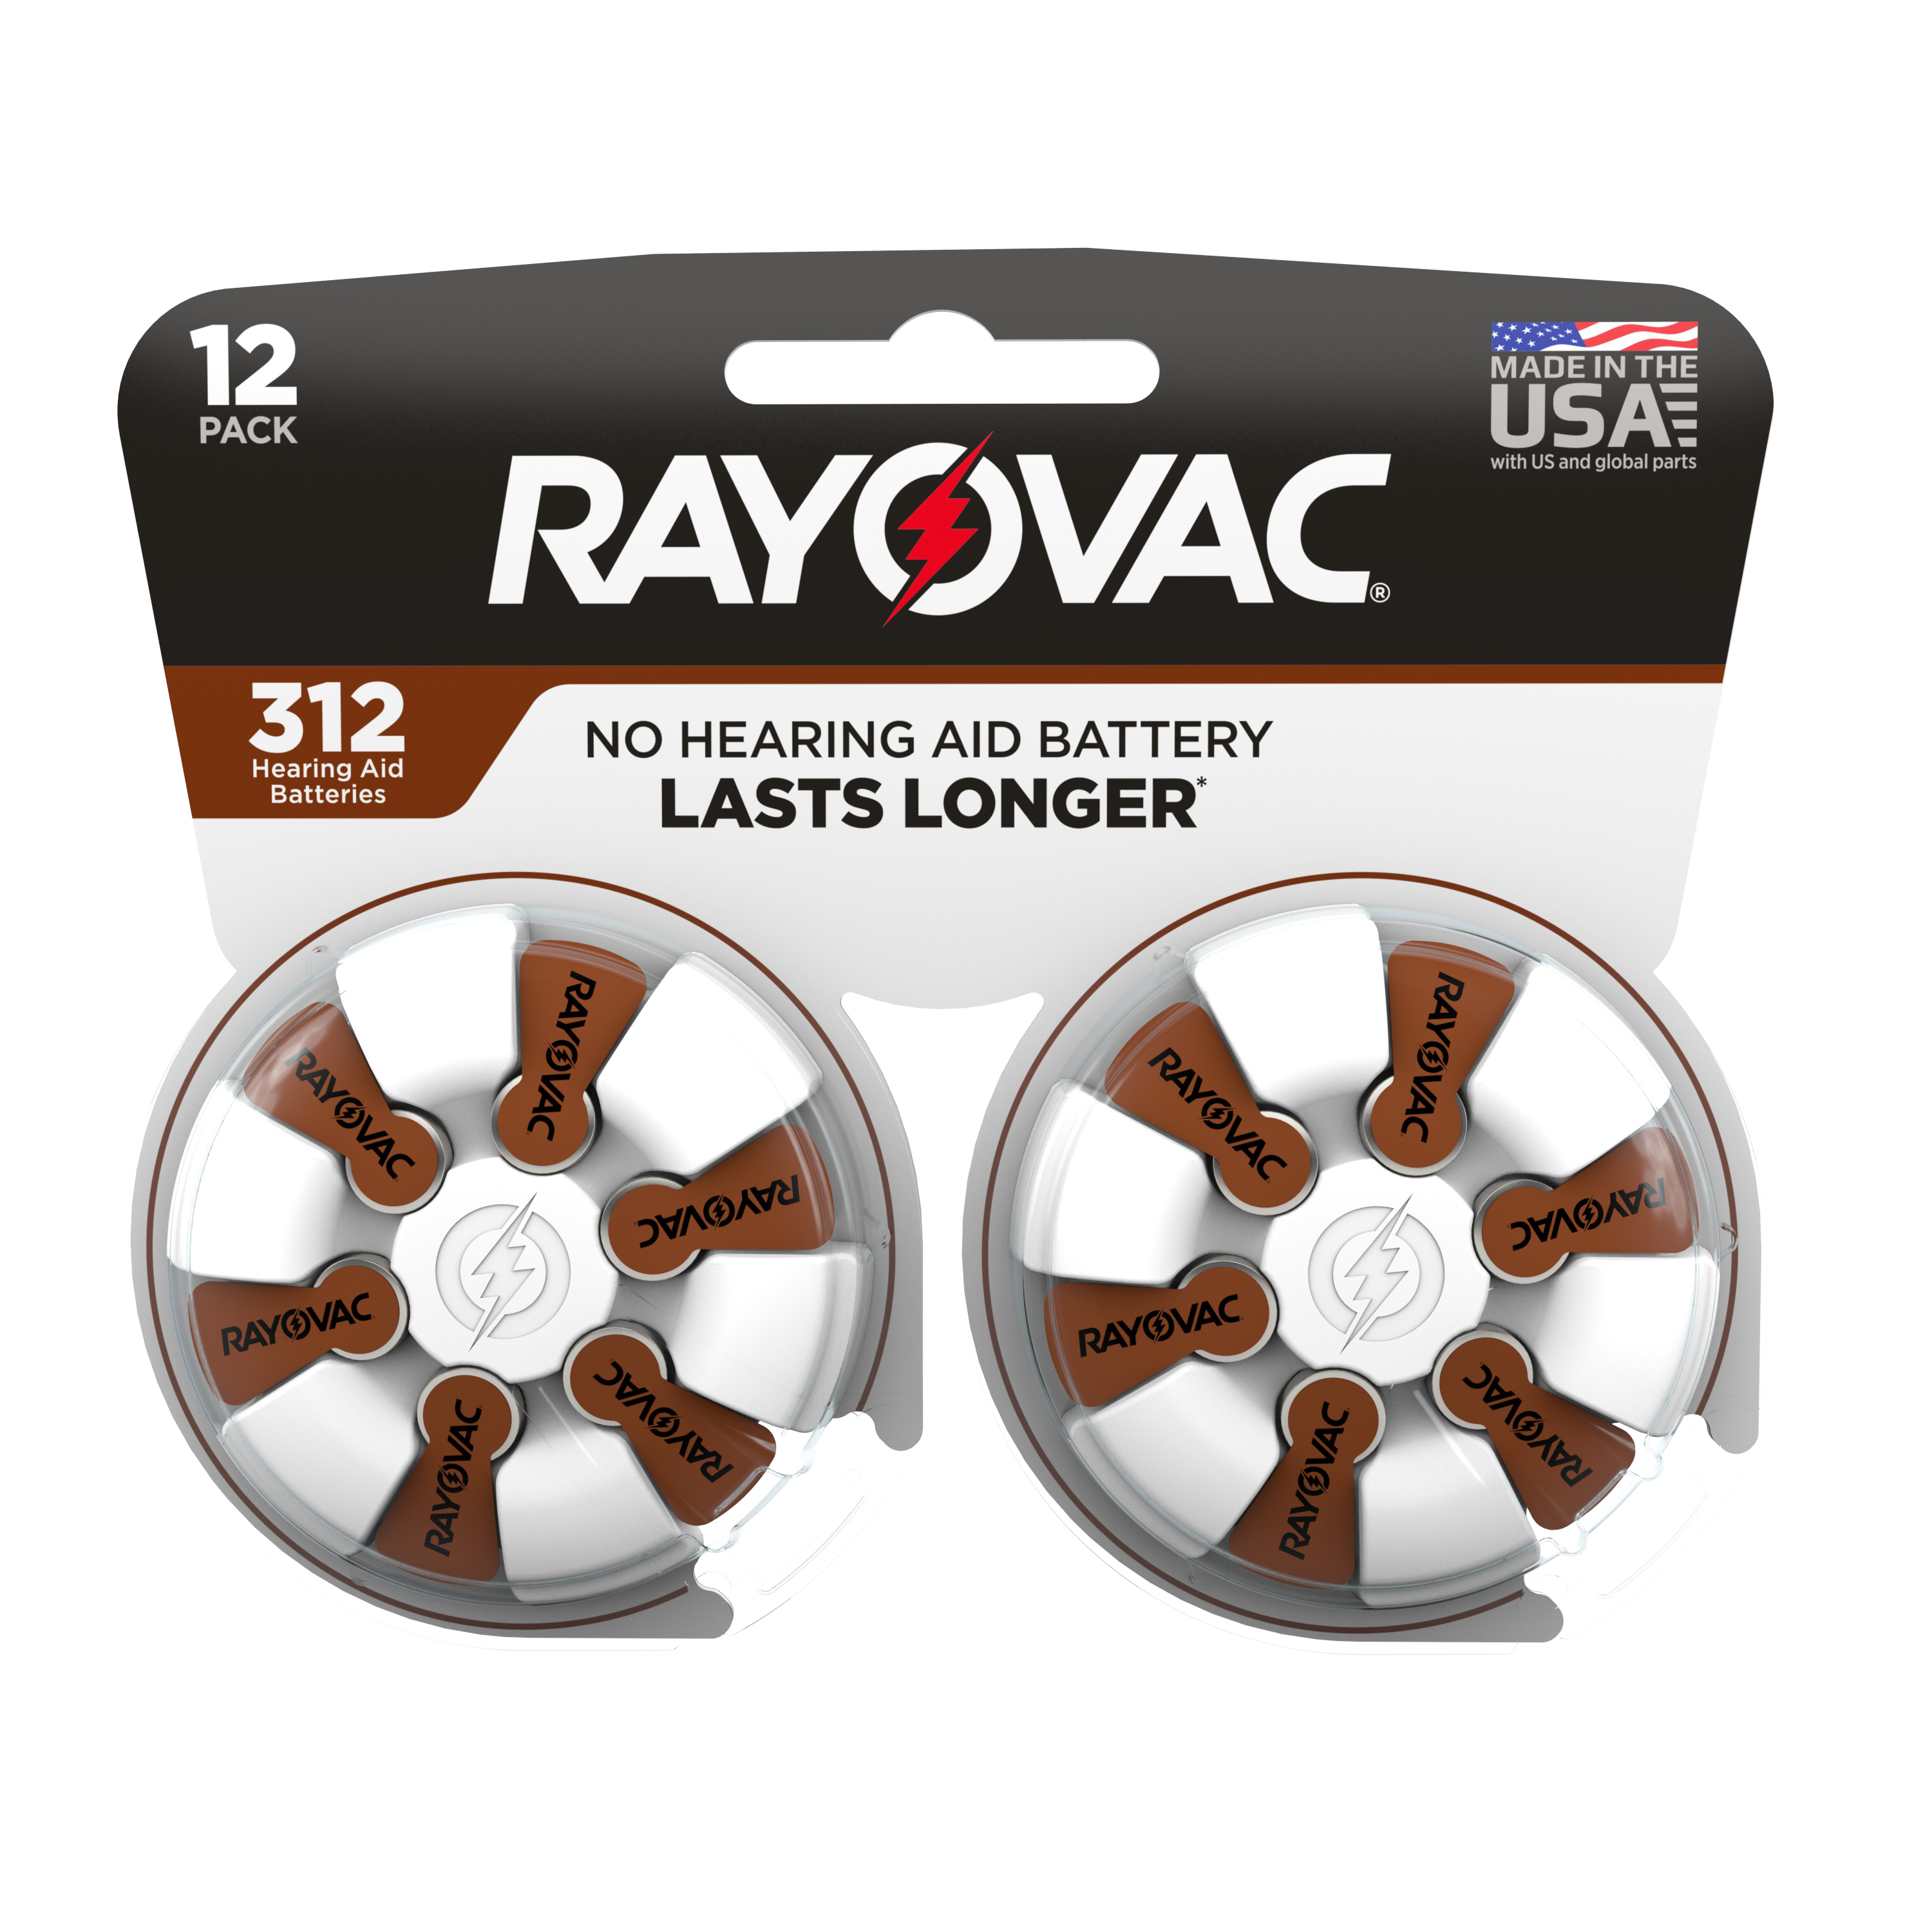 Rayovac Size 312 Hearing Aid Batteries, 12-Pack 312-12